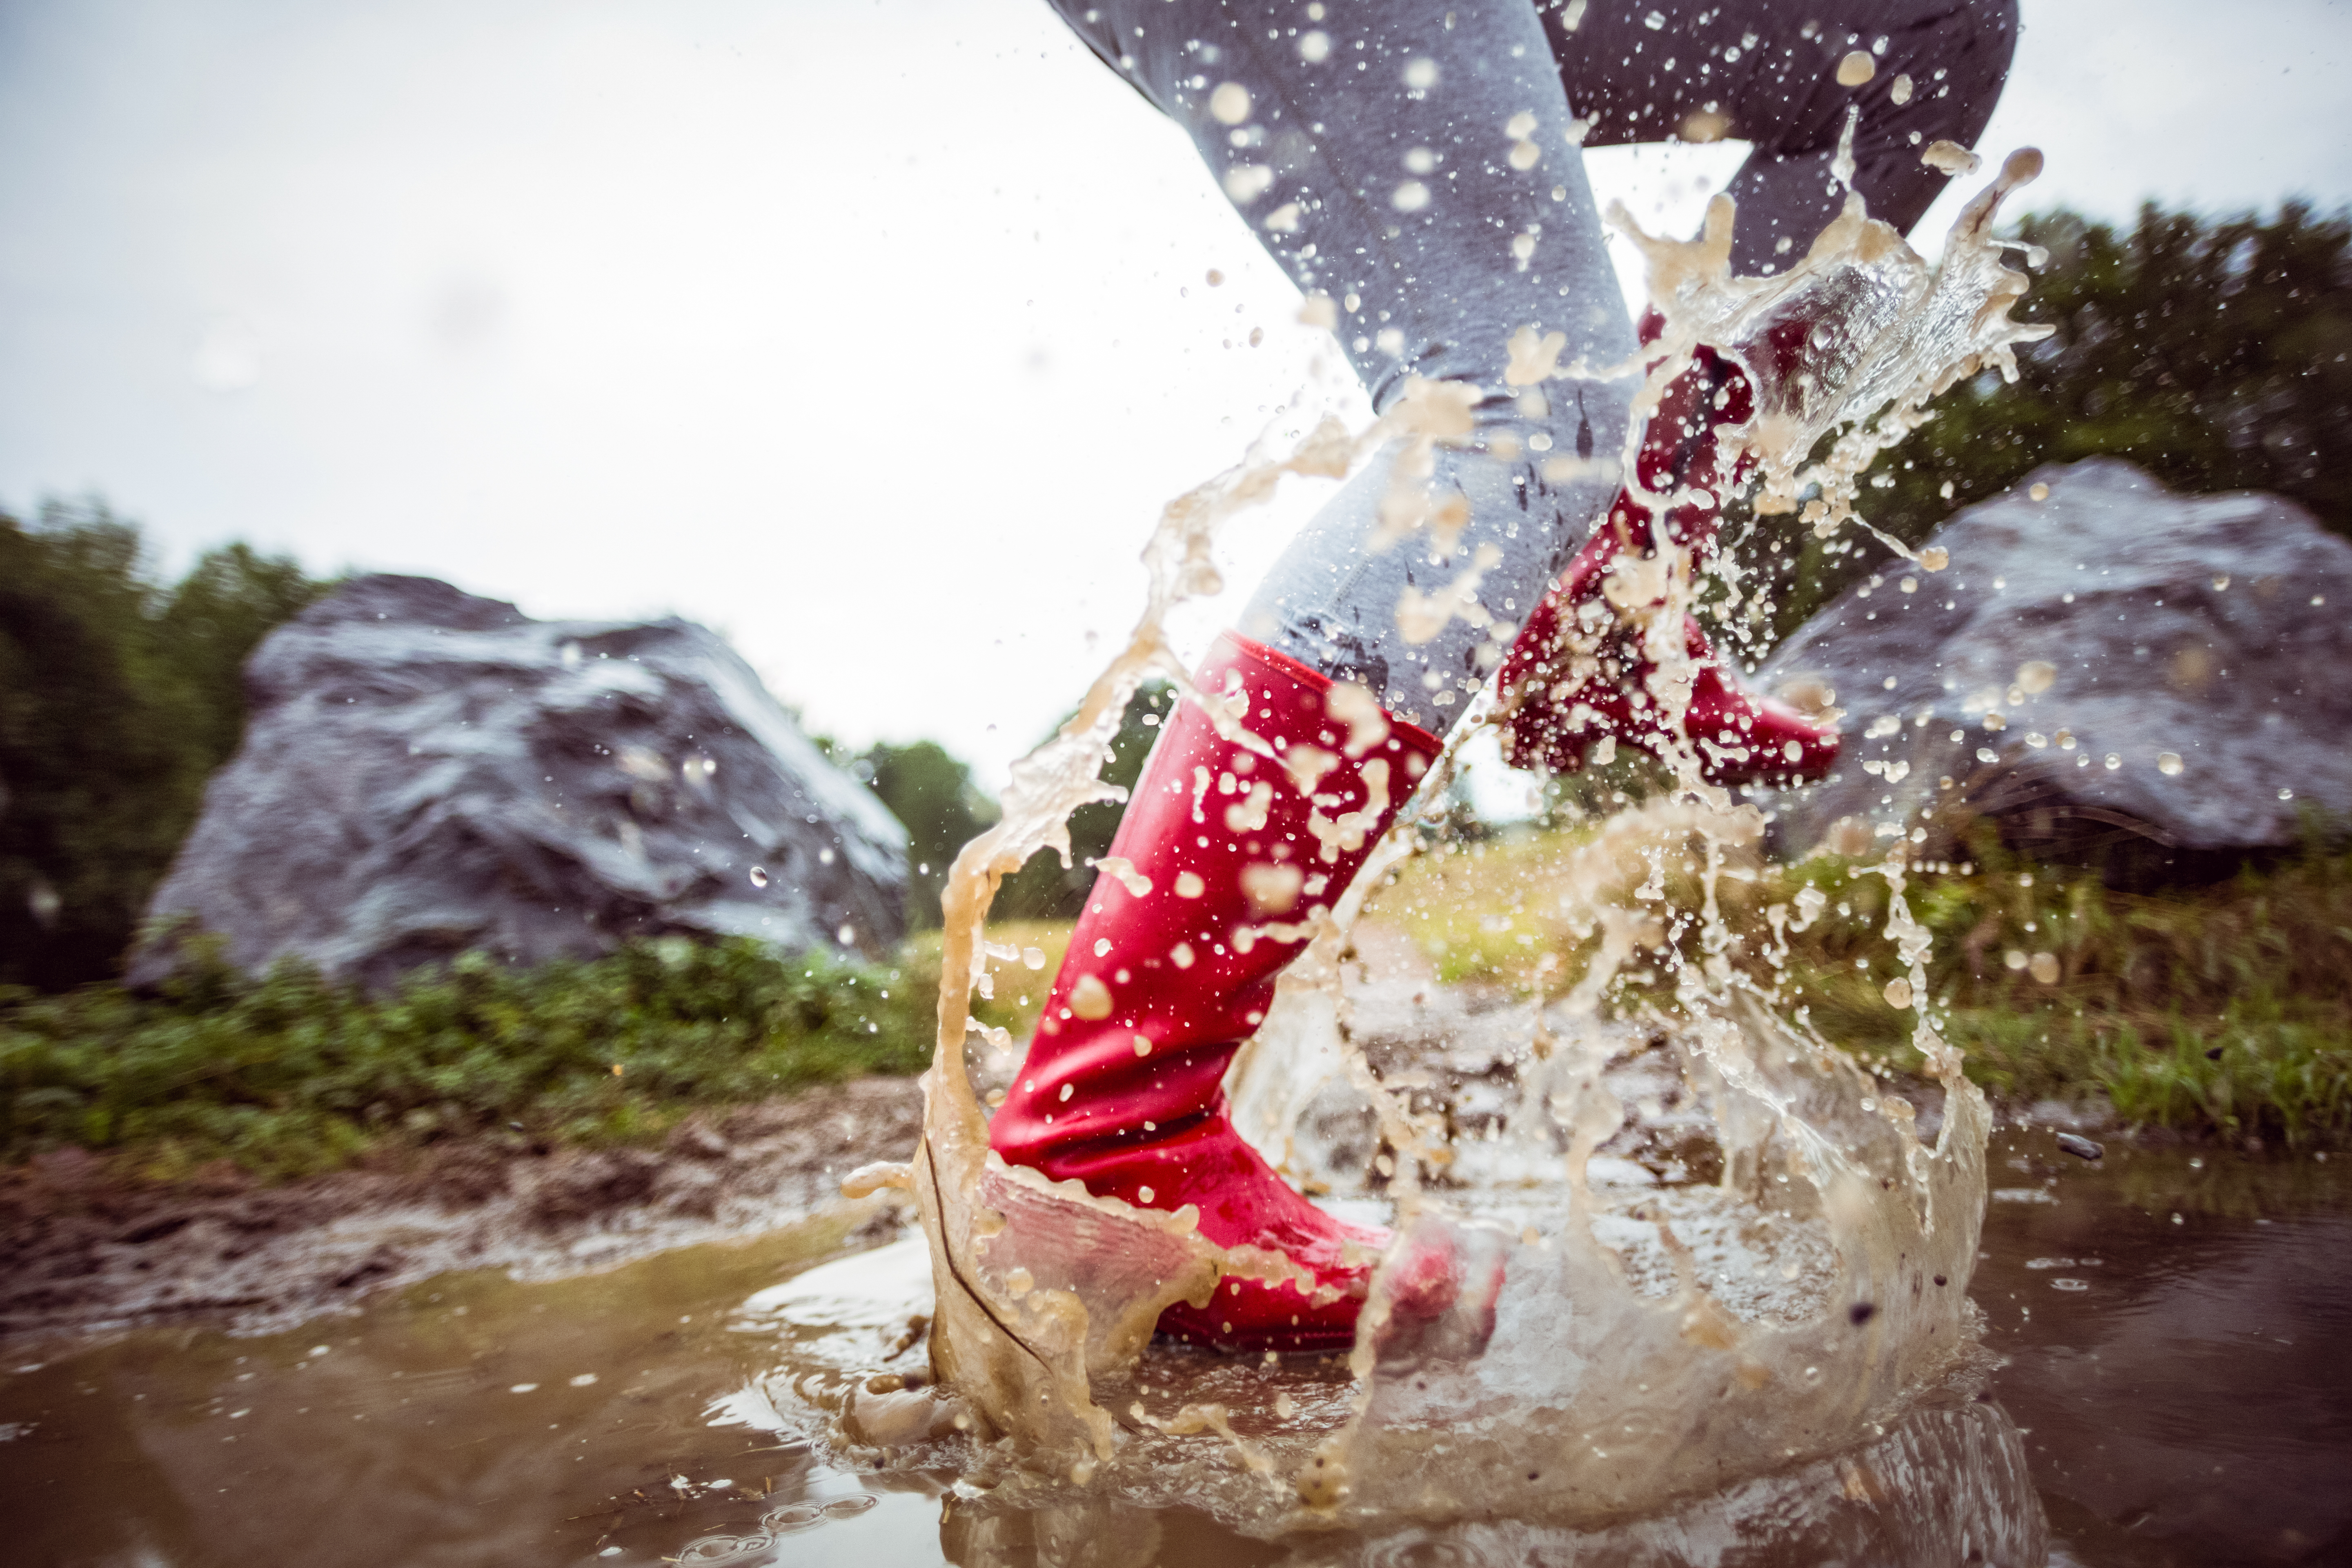 A woman wearing rain boots splashing through a puddle in the yard.